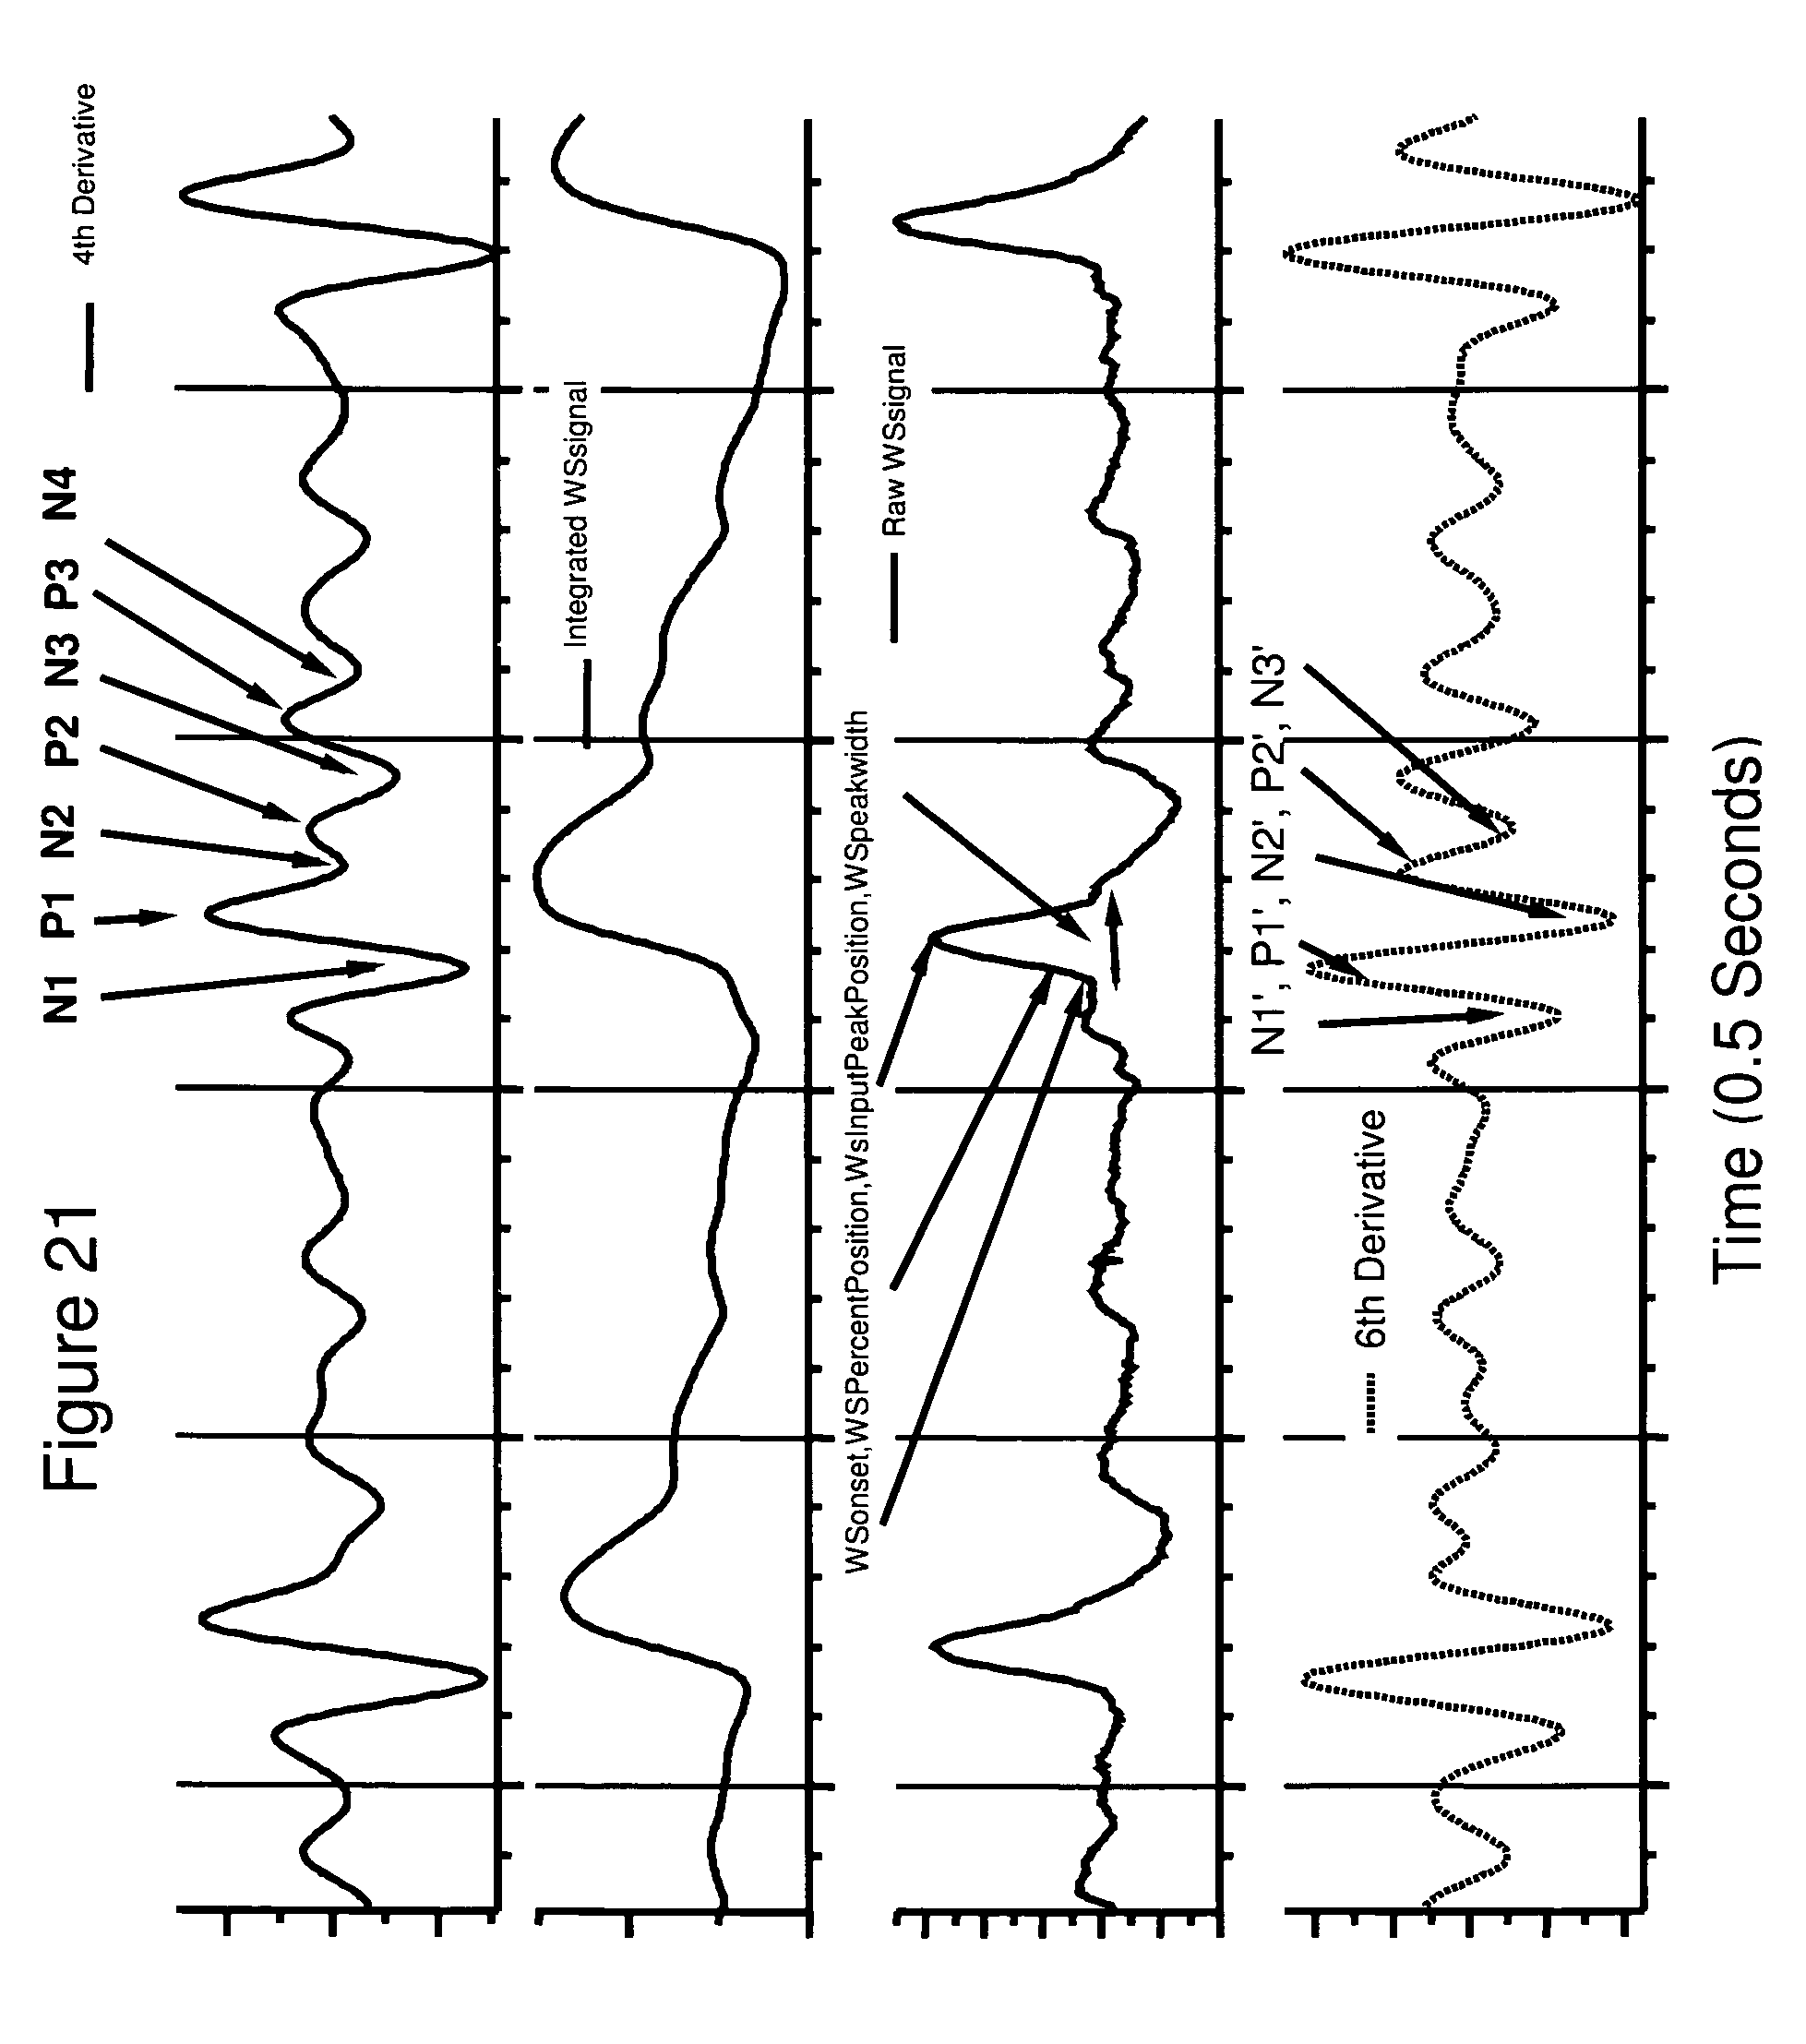 an analysis of the method of measuring arterial blood pressure Blood pressure (bp) measurement and pain assessment should be part of the   the oscillometric method records the motion (oscillations) of the artery under a   interpretation of bp measurements can be complicated by breakthrough beats.